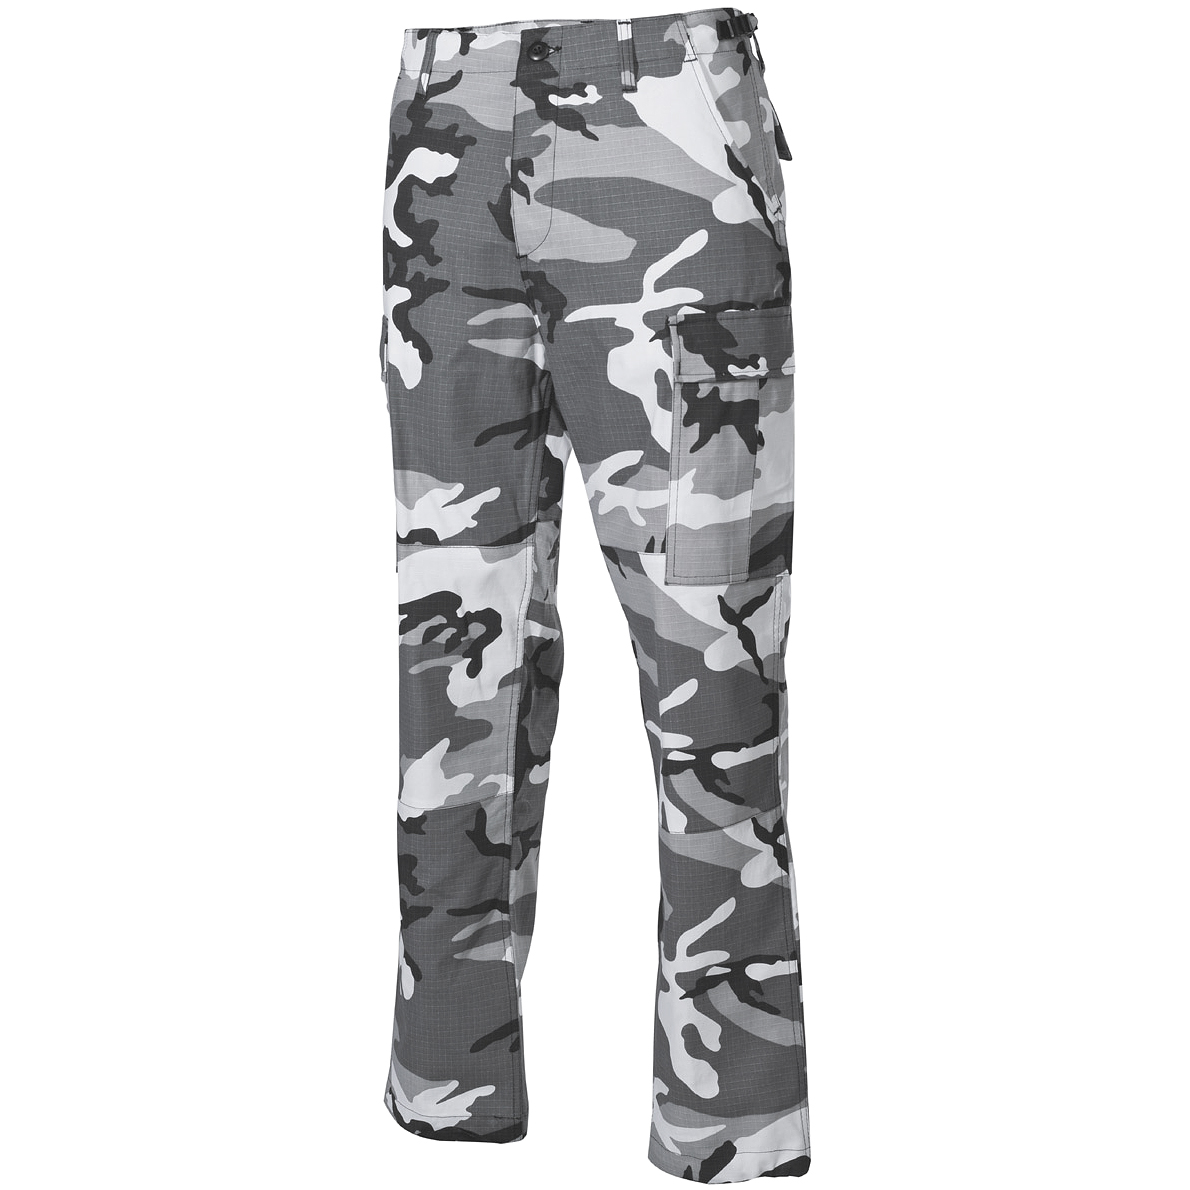 Tactical Bdu Ripstop Trousers Mens Combat Work Wear Cargo